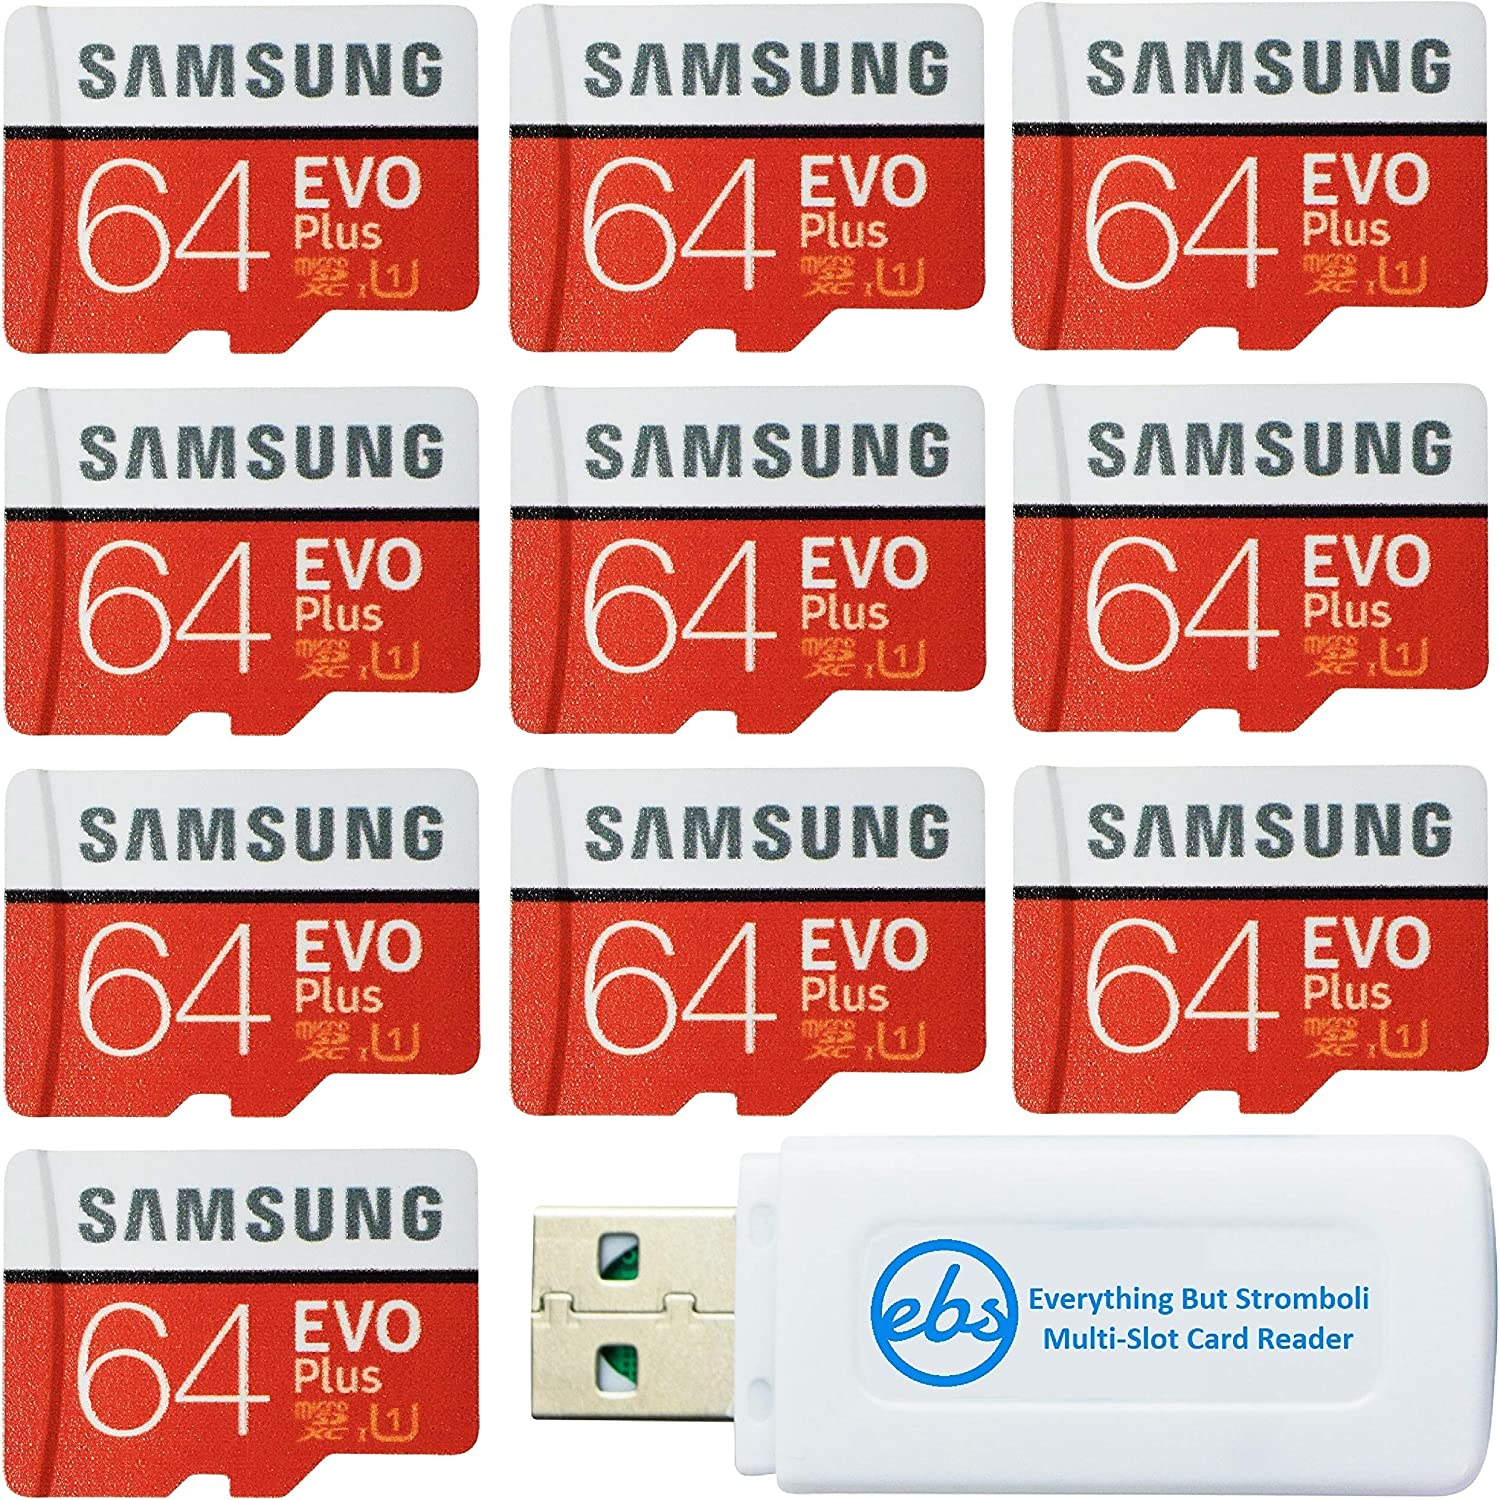 Samsung 64GB Evo Plus MicroSD Card (10 Pack EVO+) Class 10 SDXC Memory Card with Adapter (MB-MC64) Bundle with (1) Everything But Stromboli Micro & SD Card Reader